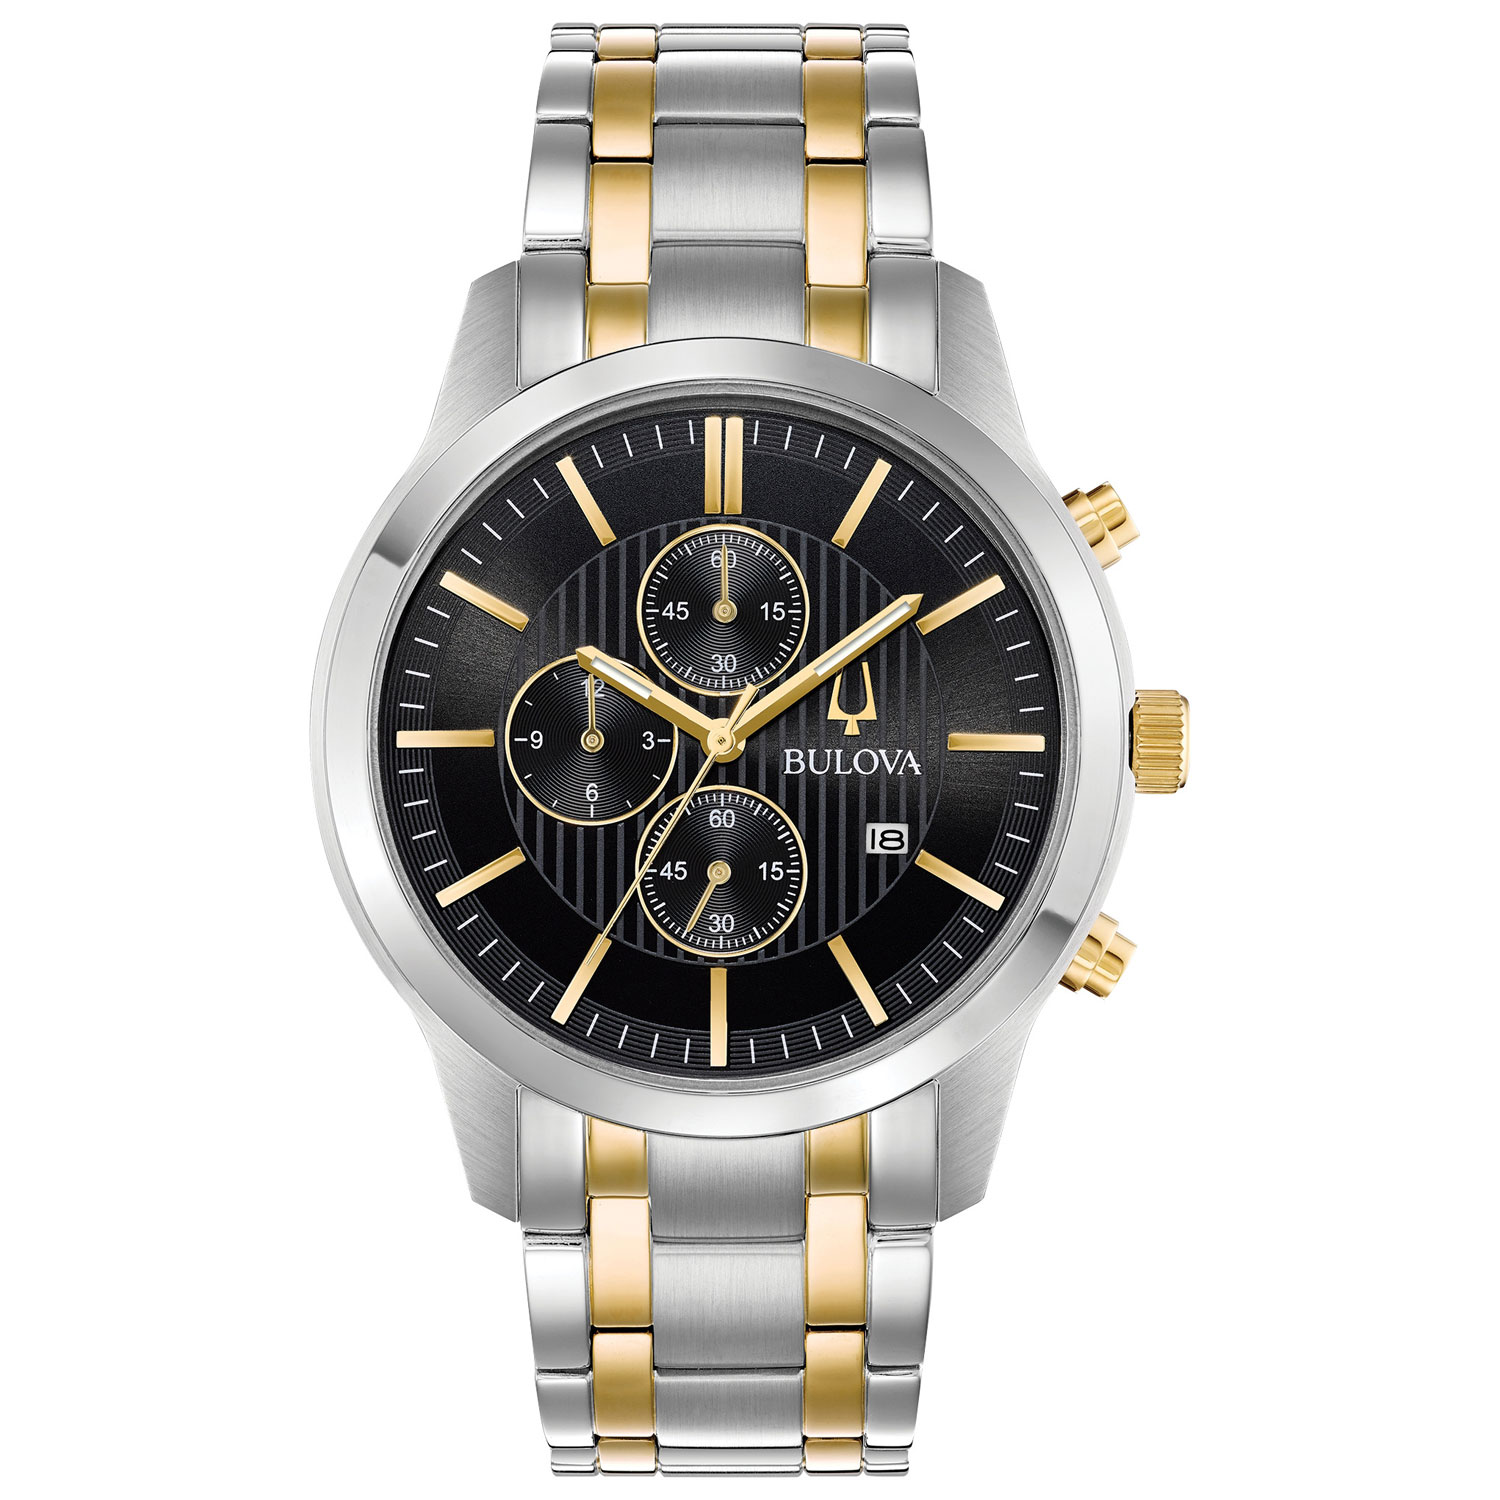 winner from brand small wristwatch automatic in mens top luxury masculino retro case item watches men golden relogio dial design steel skeleton mechanical scale military classic